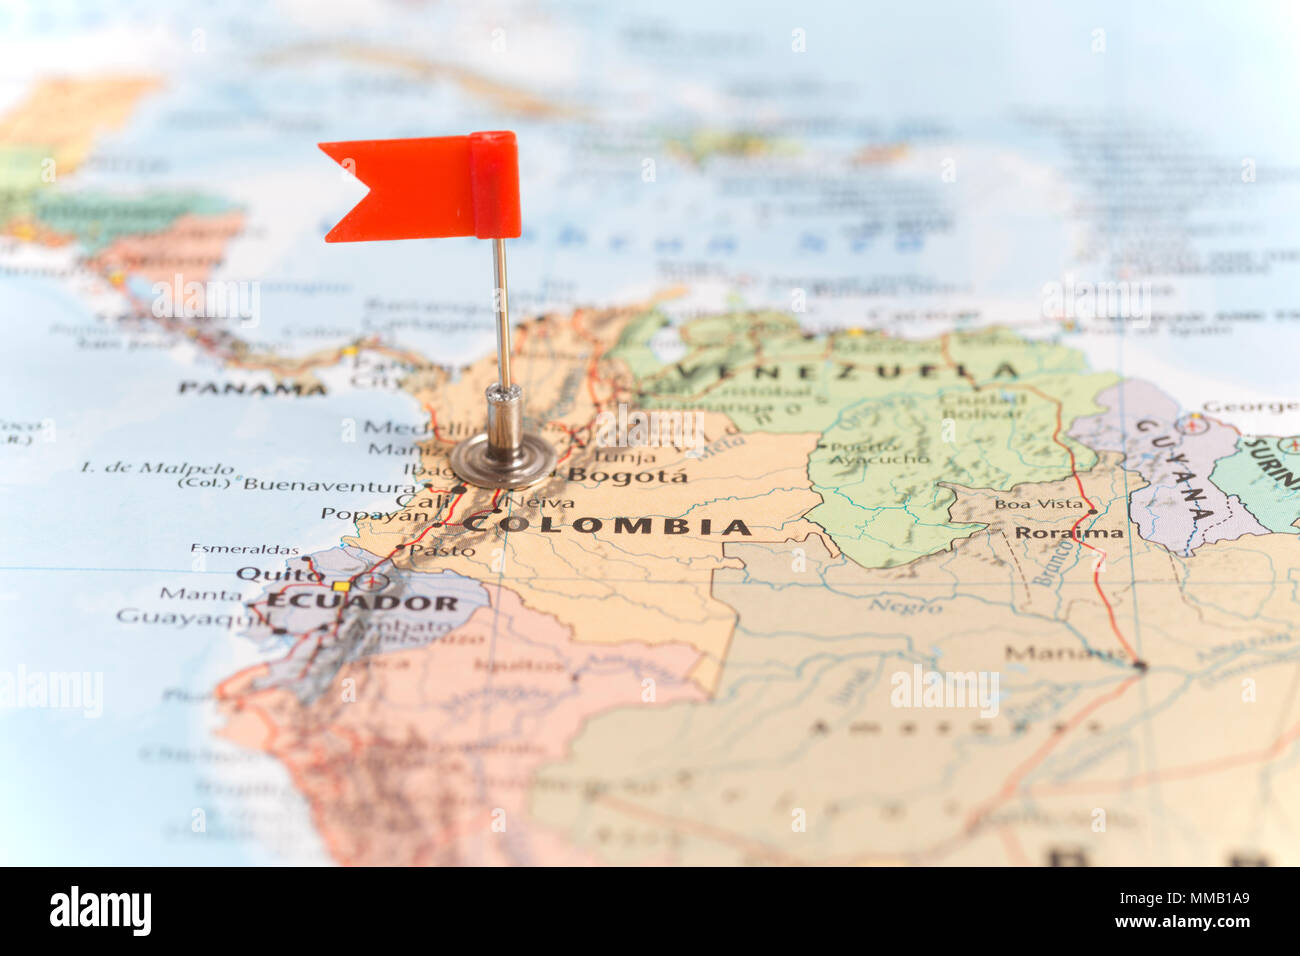 Colombia south america map stock photos colombia south america map small red flag marking the south american country of colombia on a world map gumiabroncs Gallery